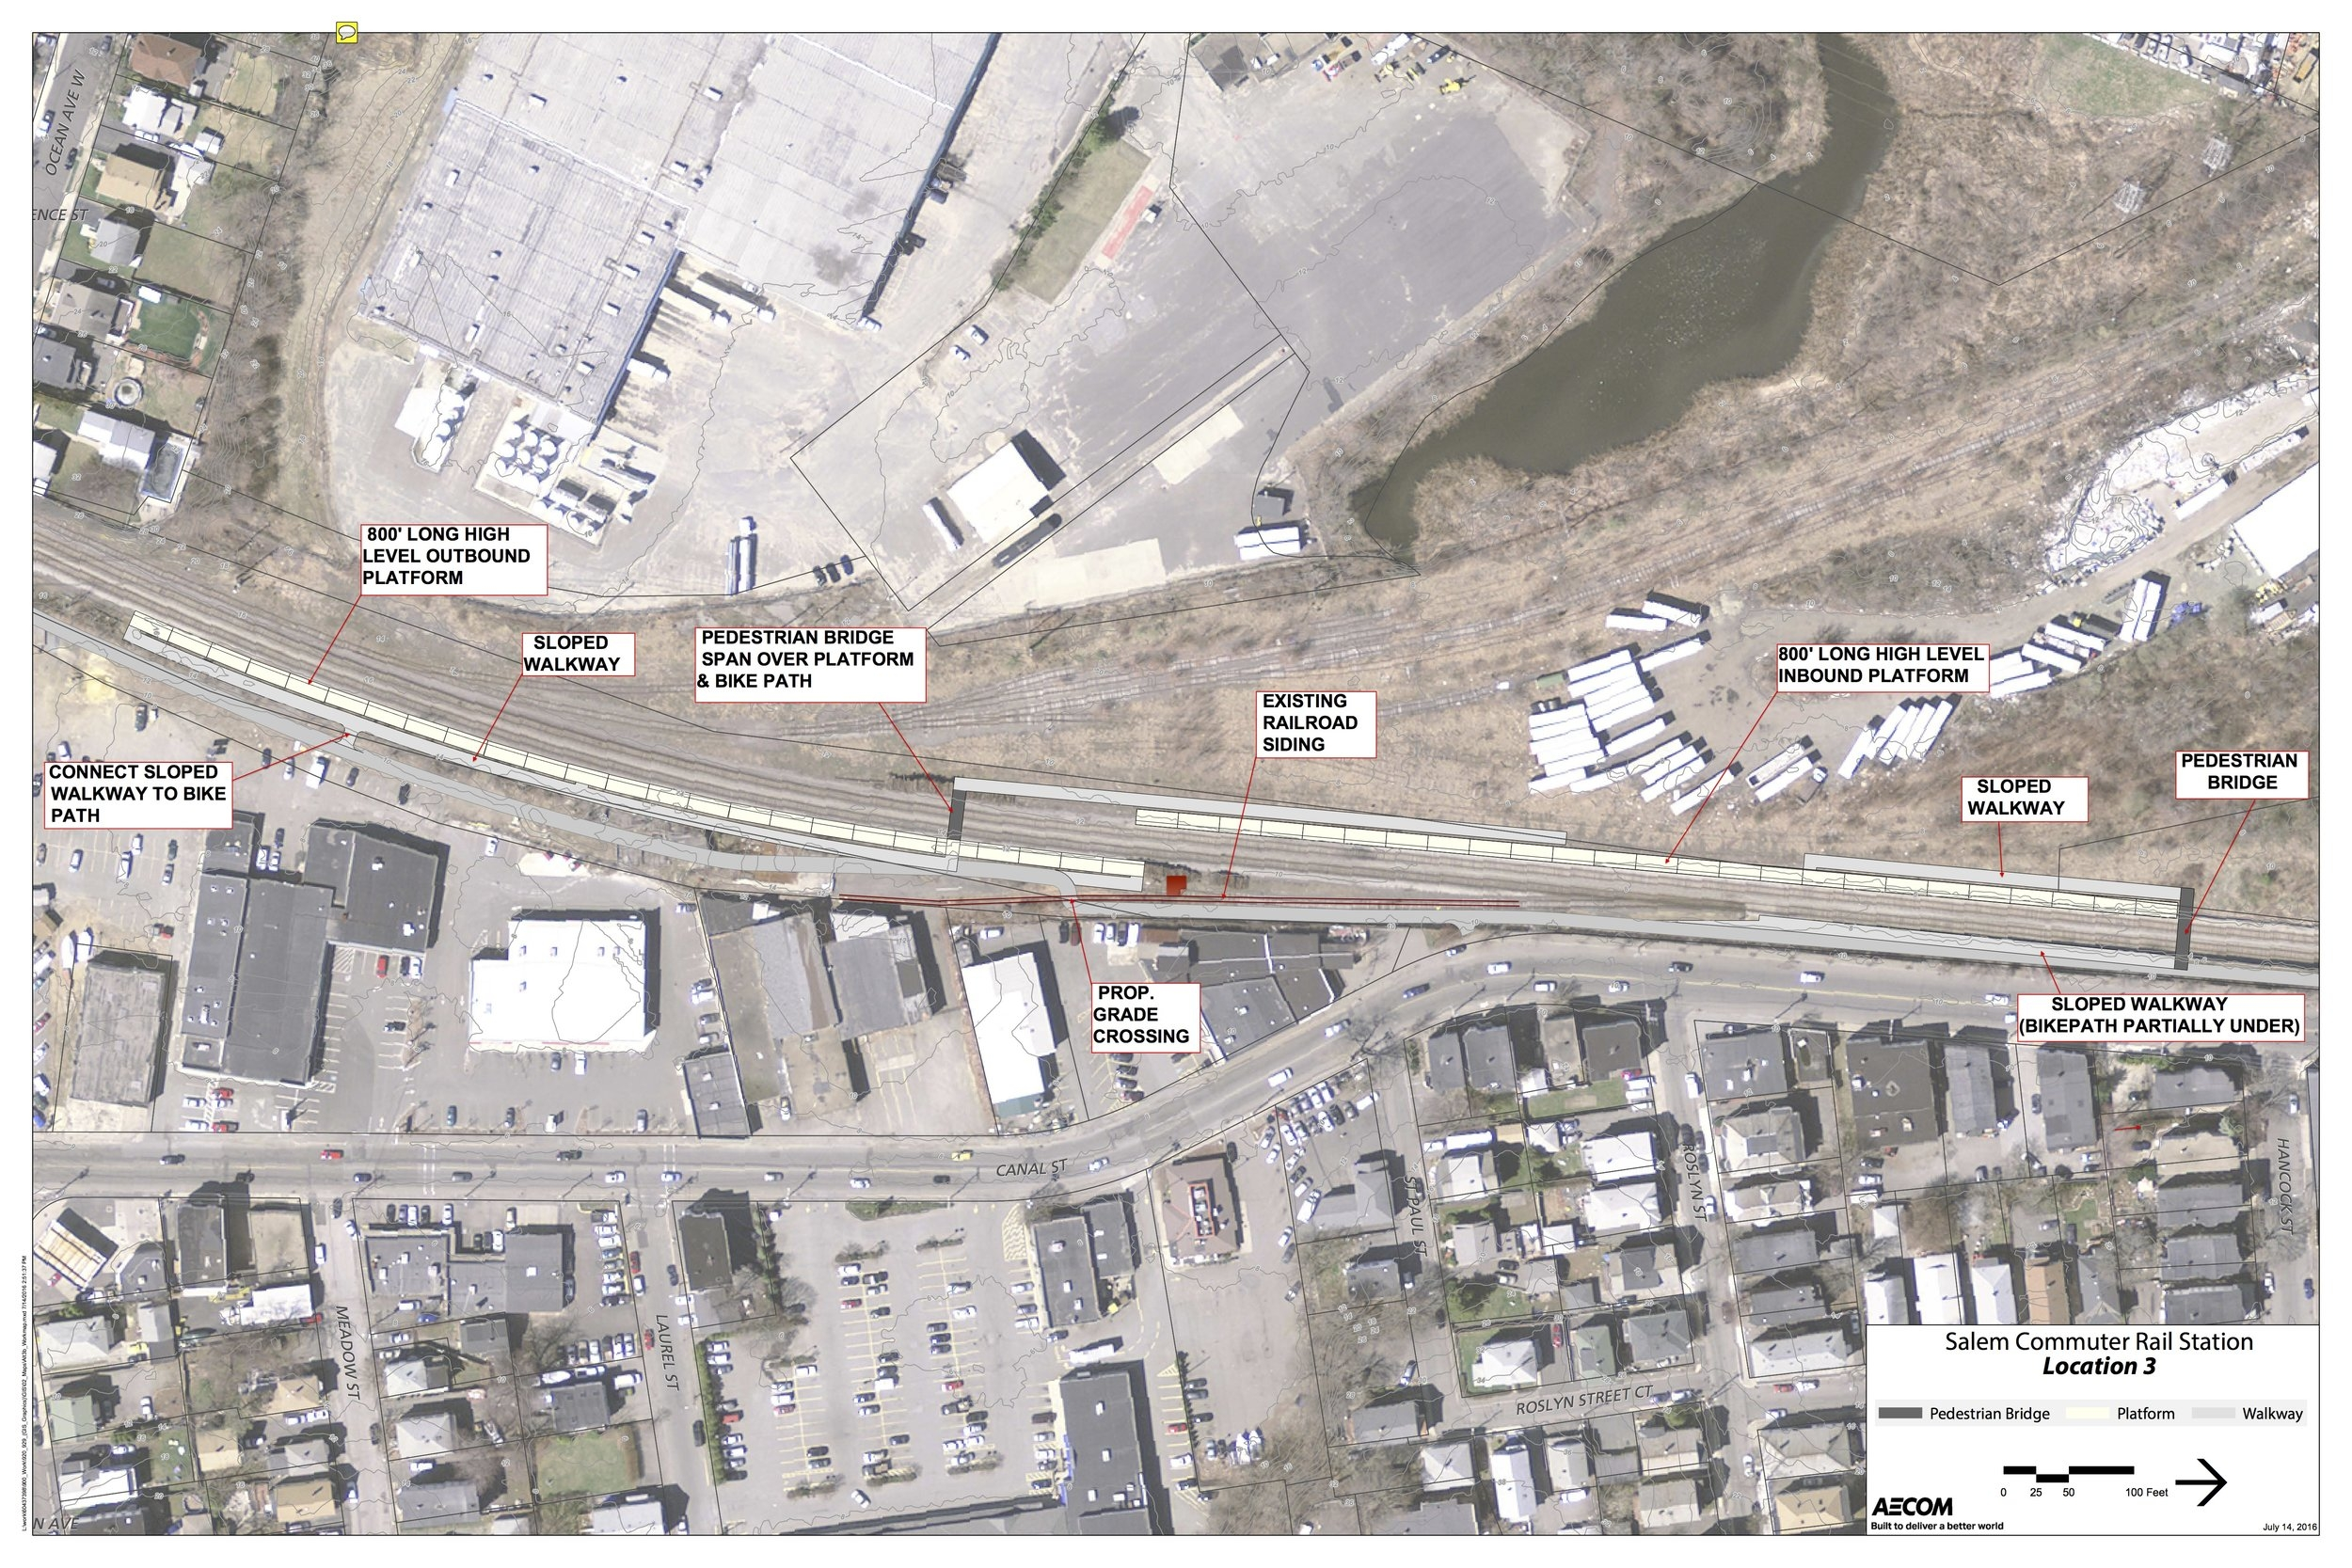 Preferred location for South Salem Commuter Rail Stop showing access to Canal Street.